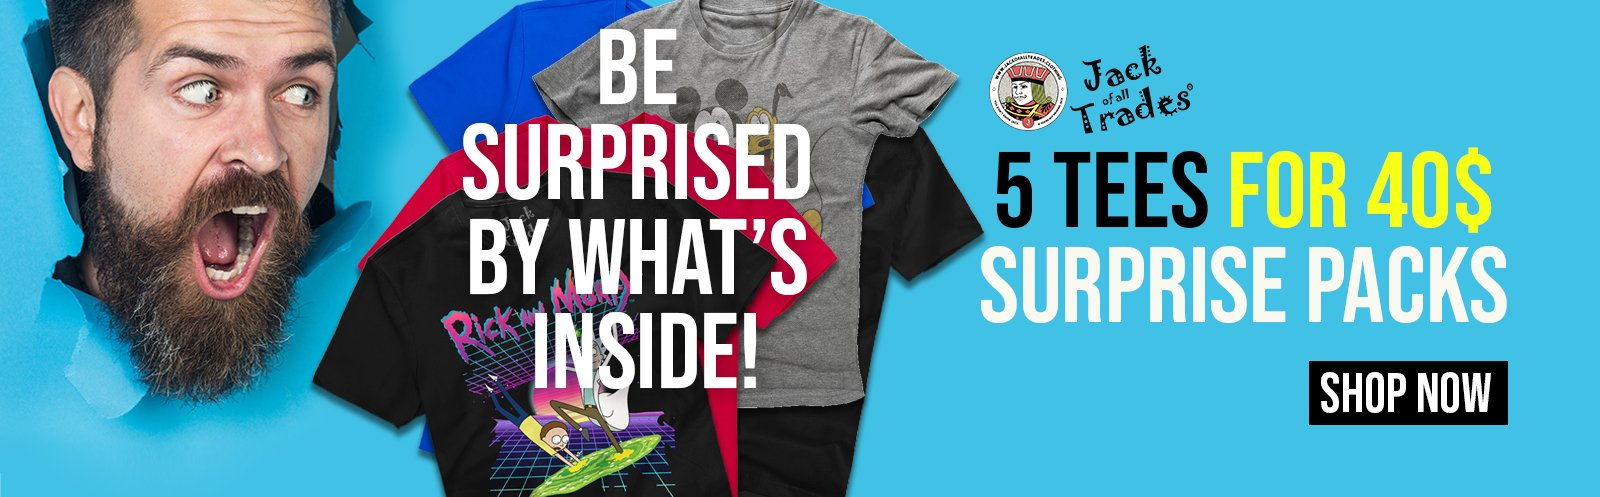 5 for 40 Surprise Pack Tees